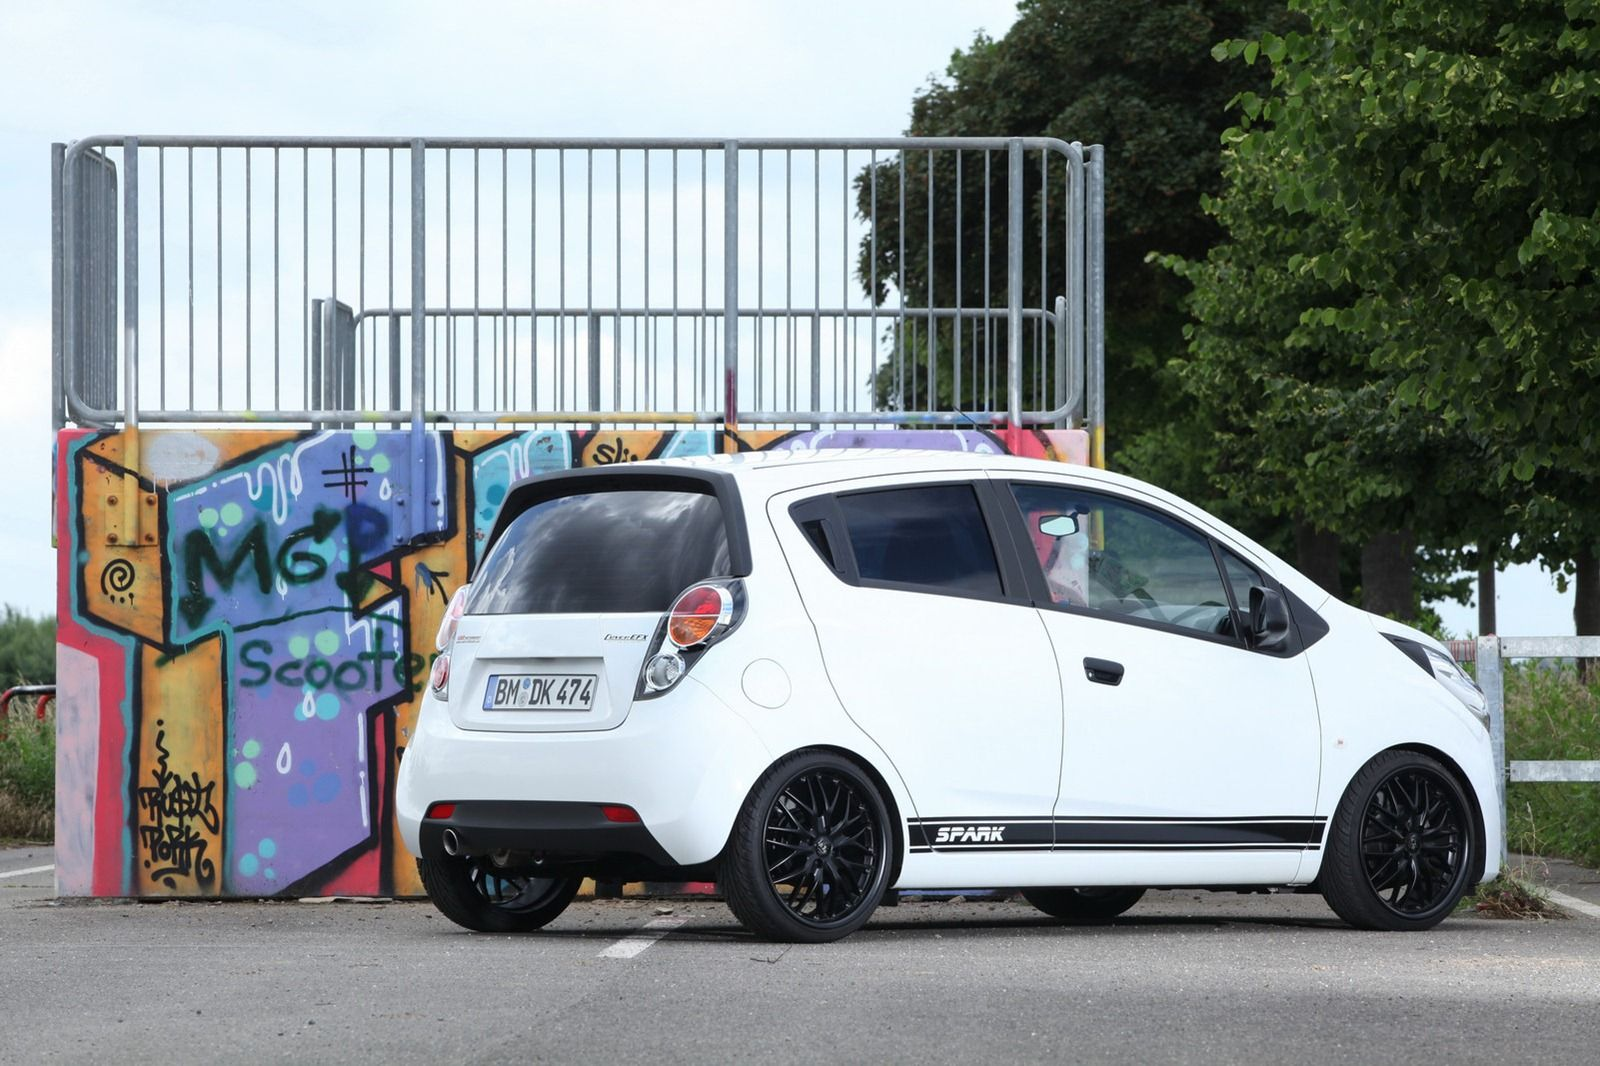 Chevy Spark White Cars Cars And More Cars Spark Gt Autos Carritos